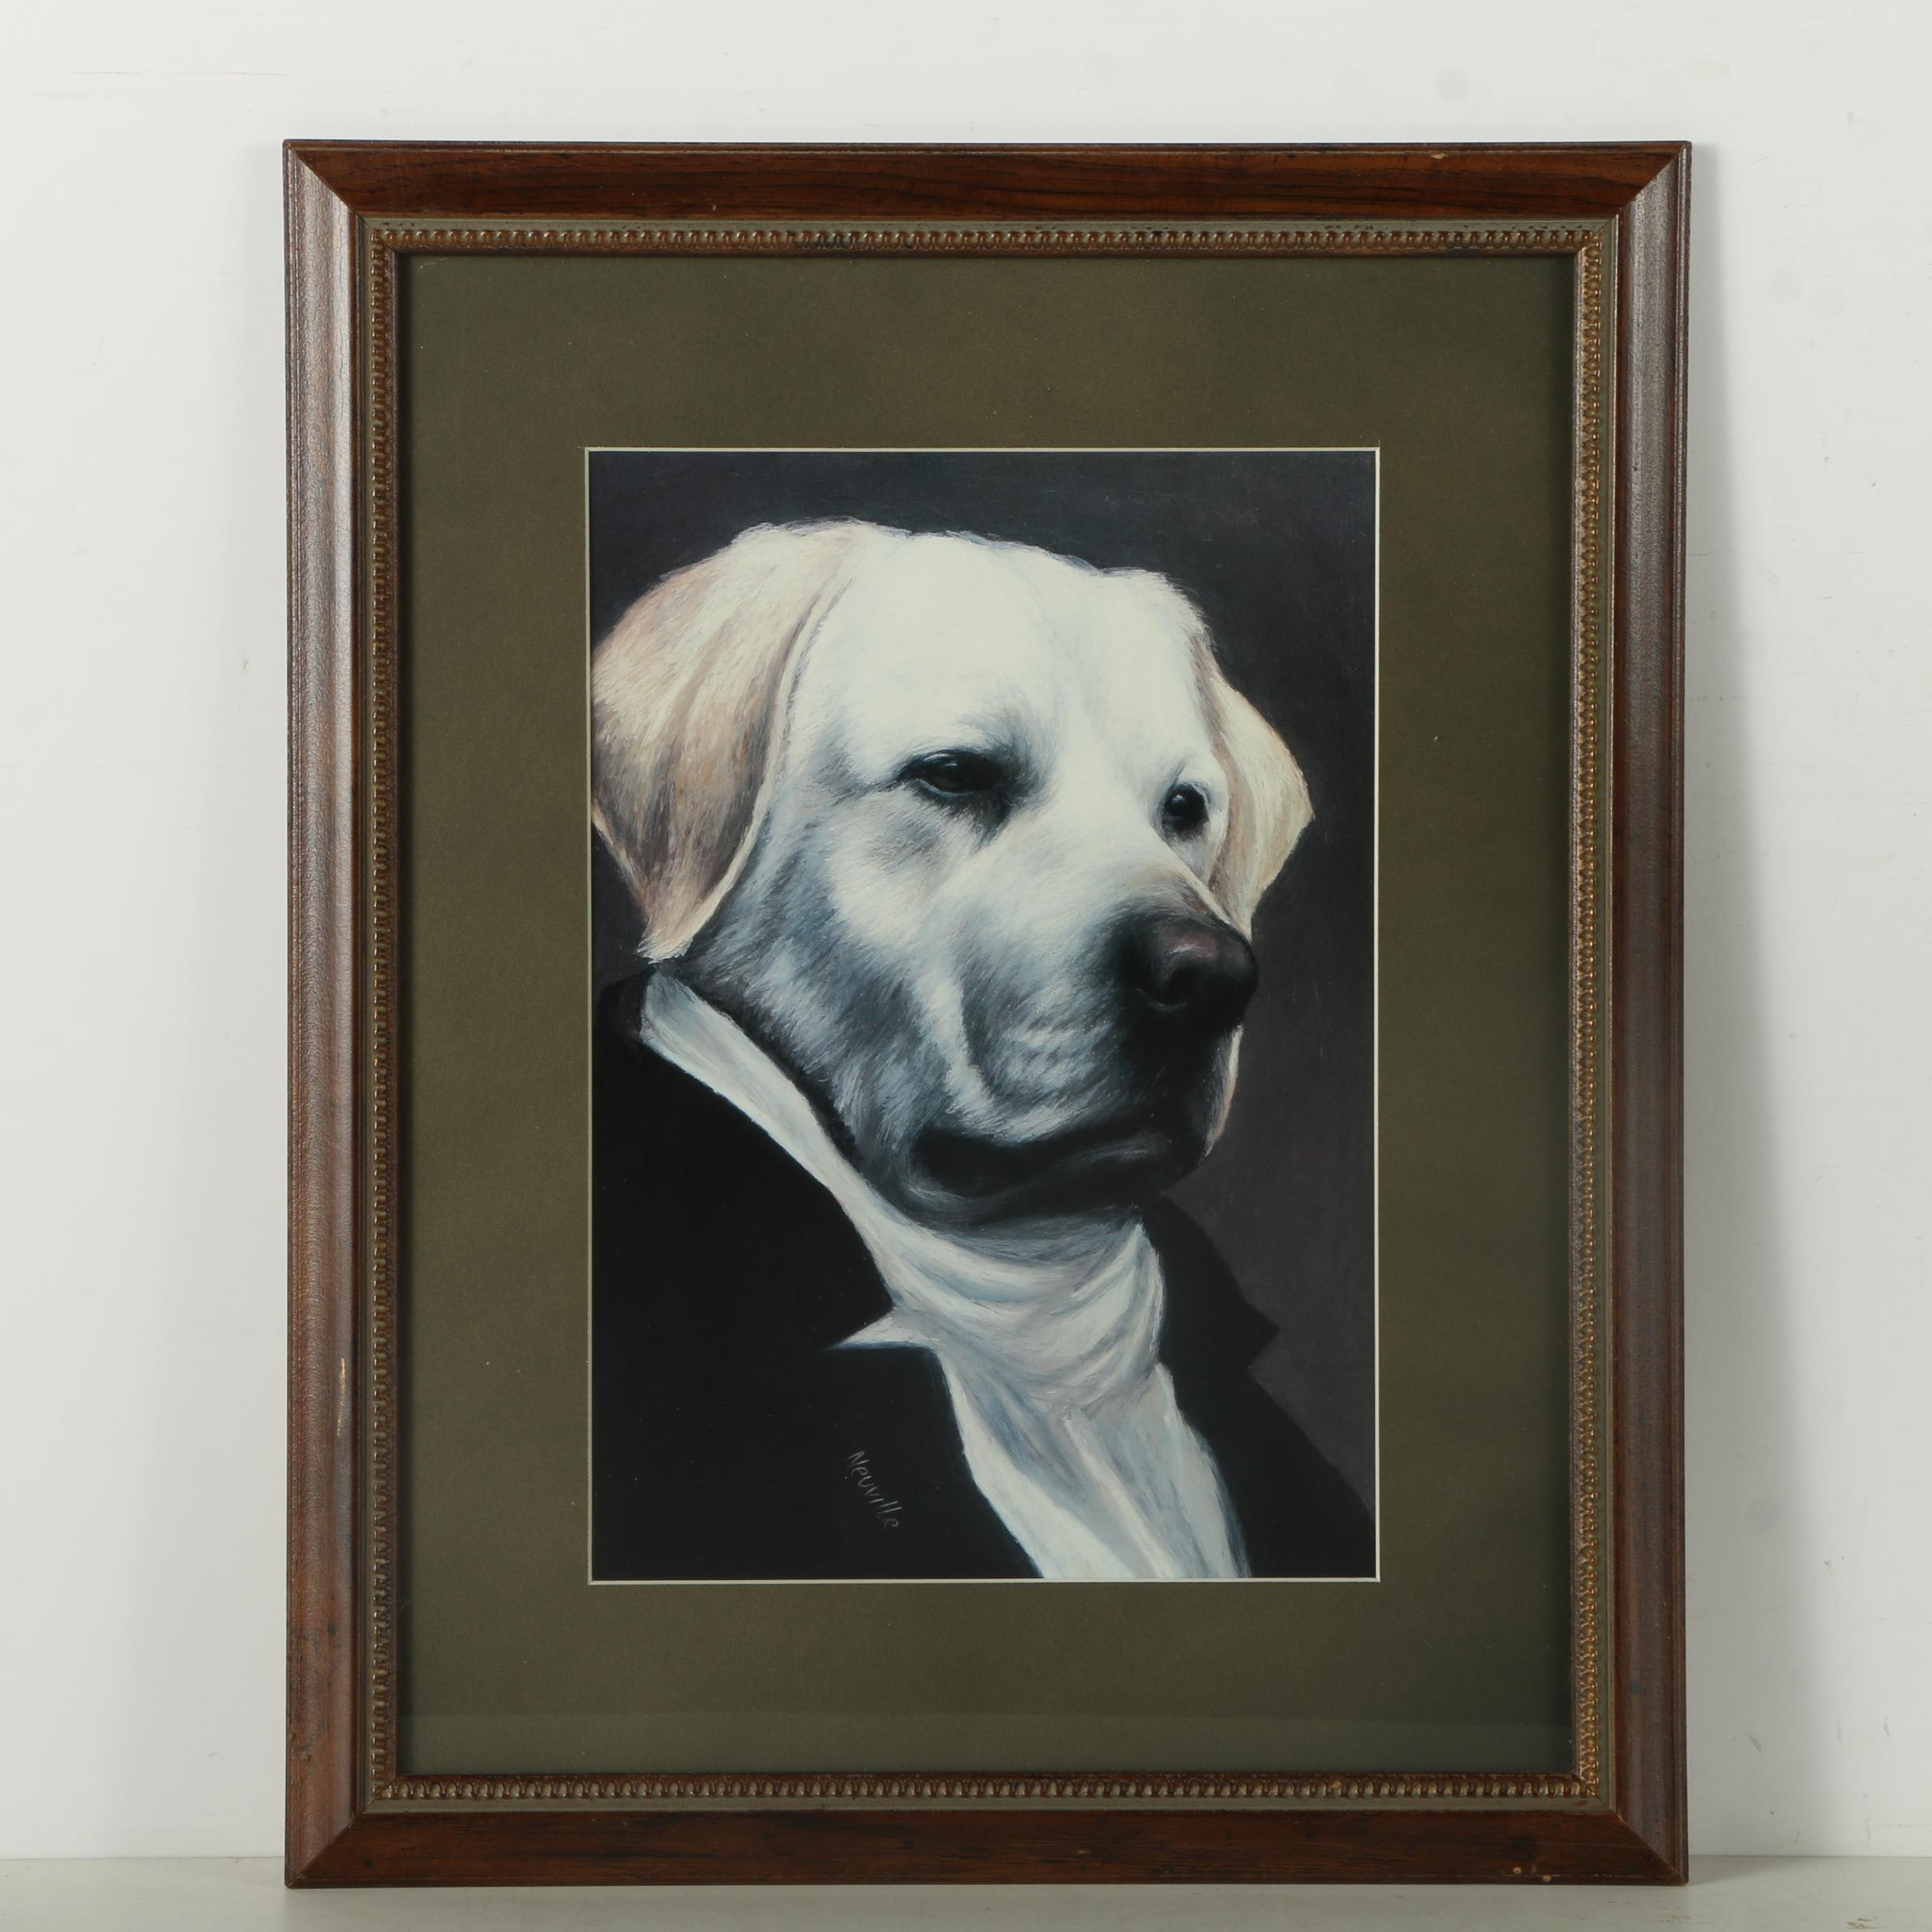 Bombay Company Offset Lithograph of Anthropomorphic Dog